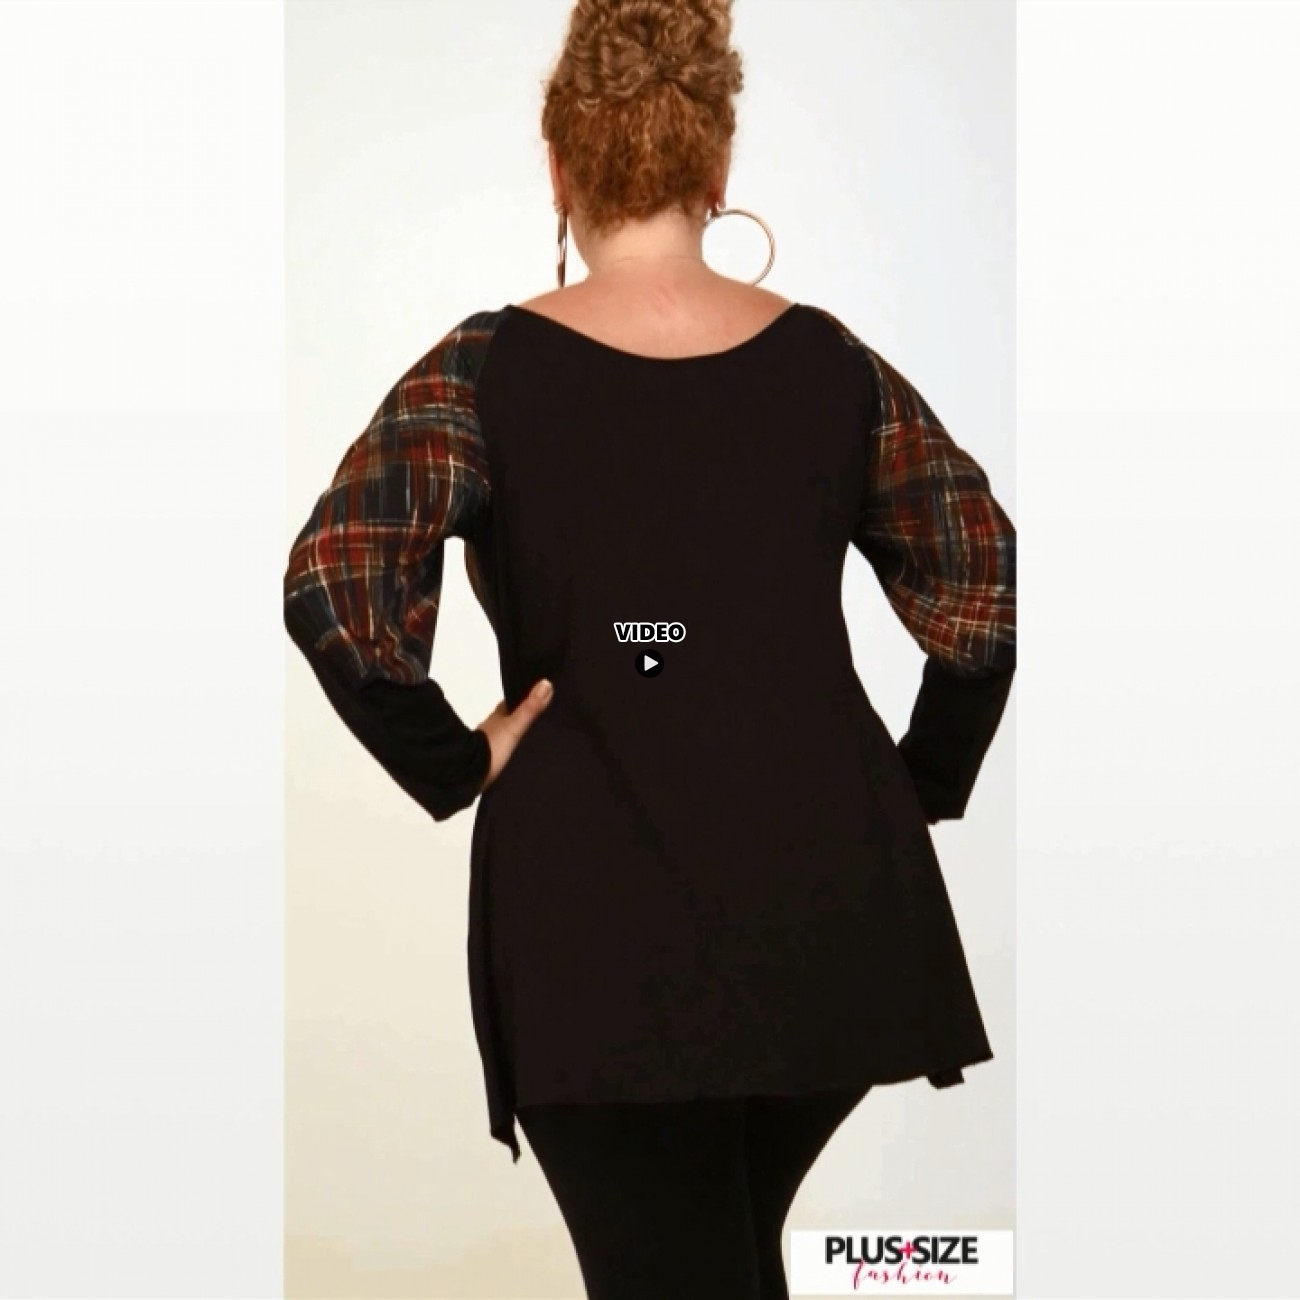 B20-5961 Evaze Blouse with pinch-tie design